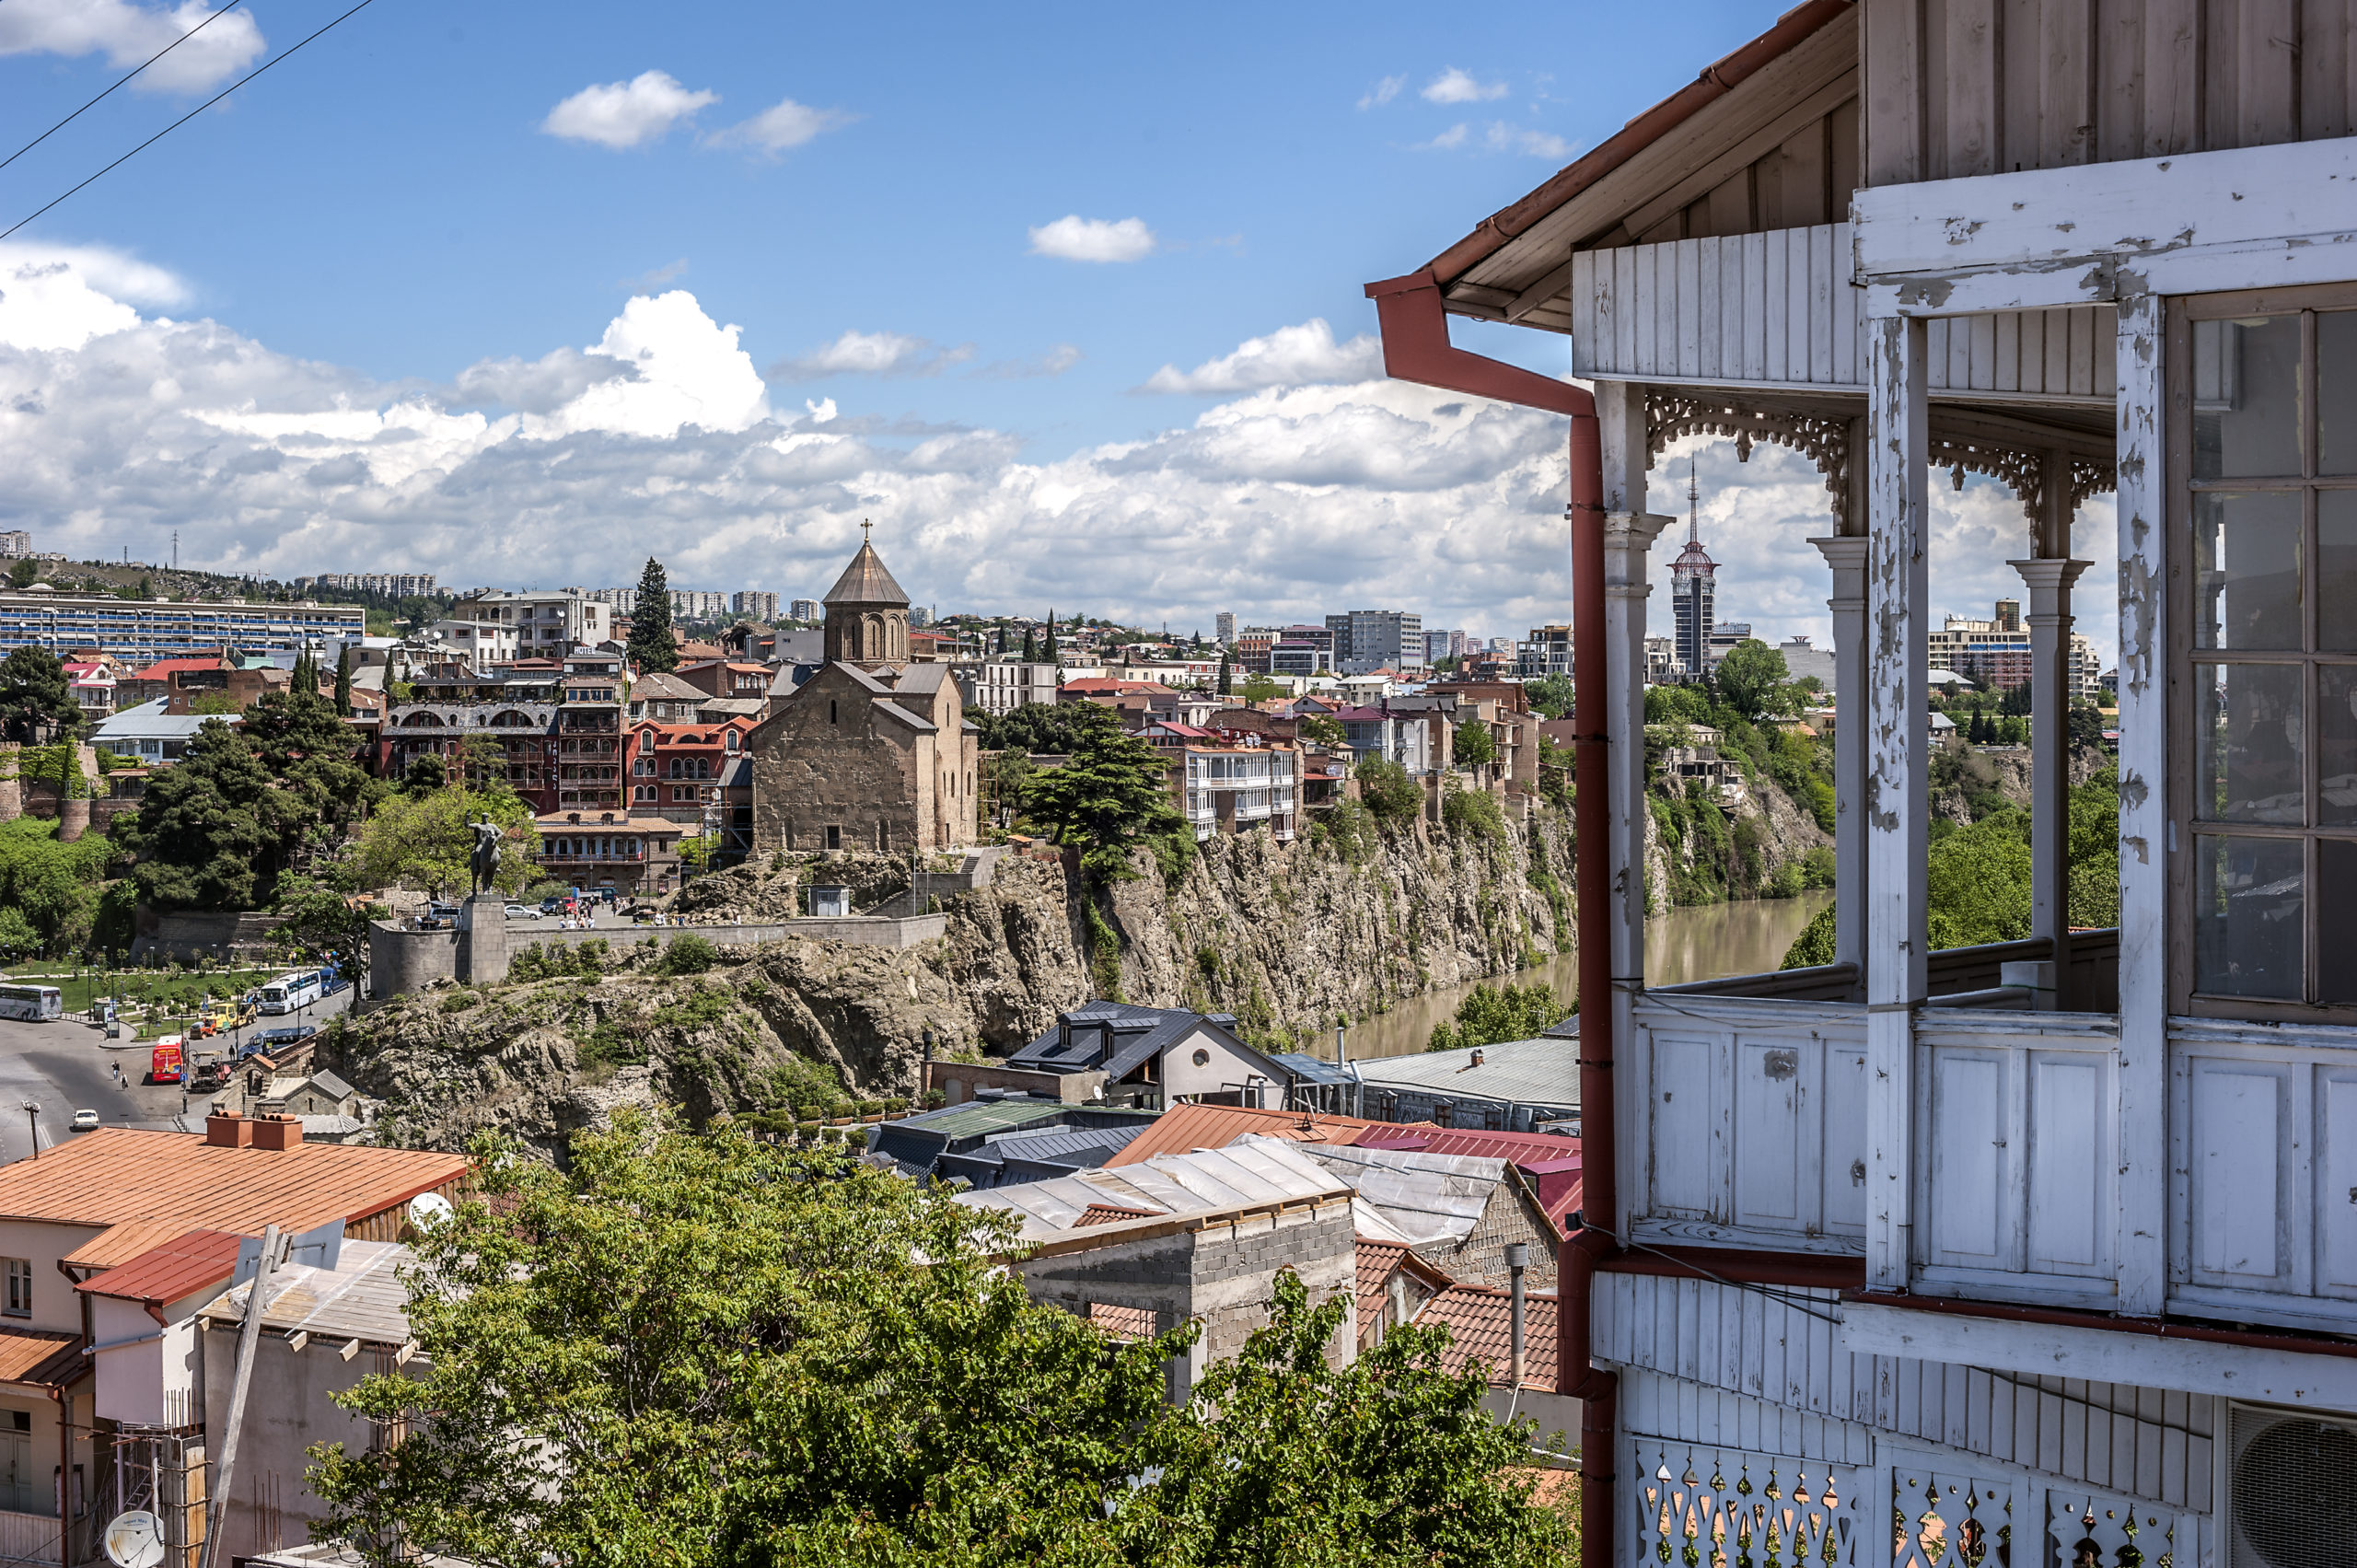 Tbilisi, capital of Georgia. Famous throughout the world Tbilisi balconies in the Old Town. View of the left bank of the Kura River in the district of Avlabari.